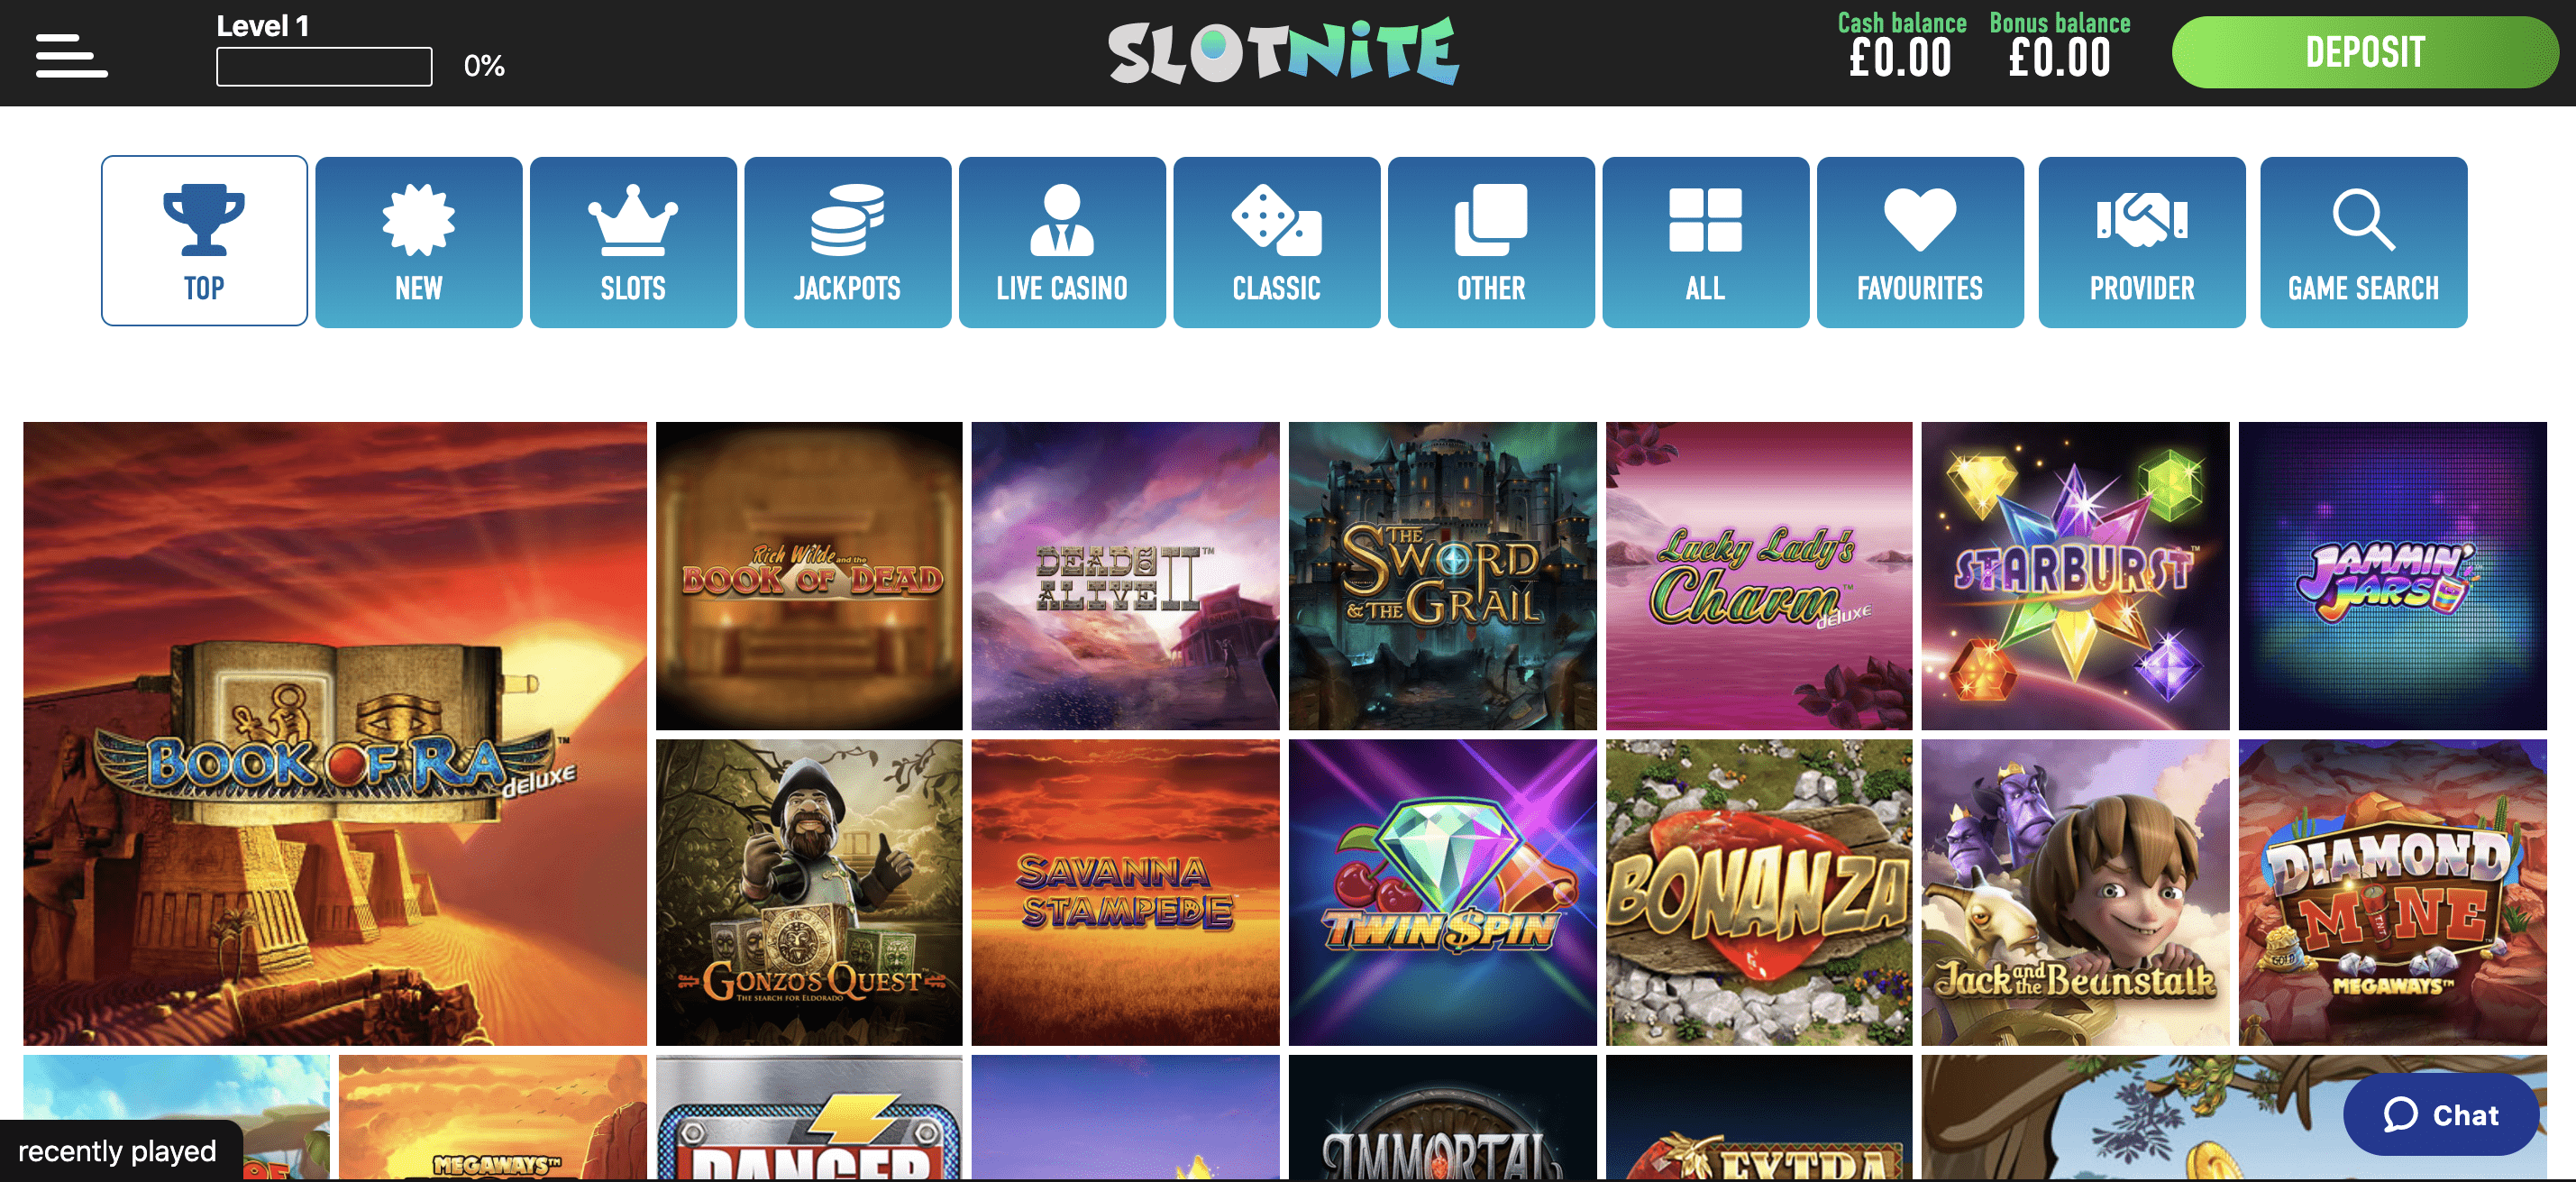 Slotnite - Best online casino games uk